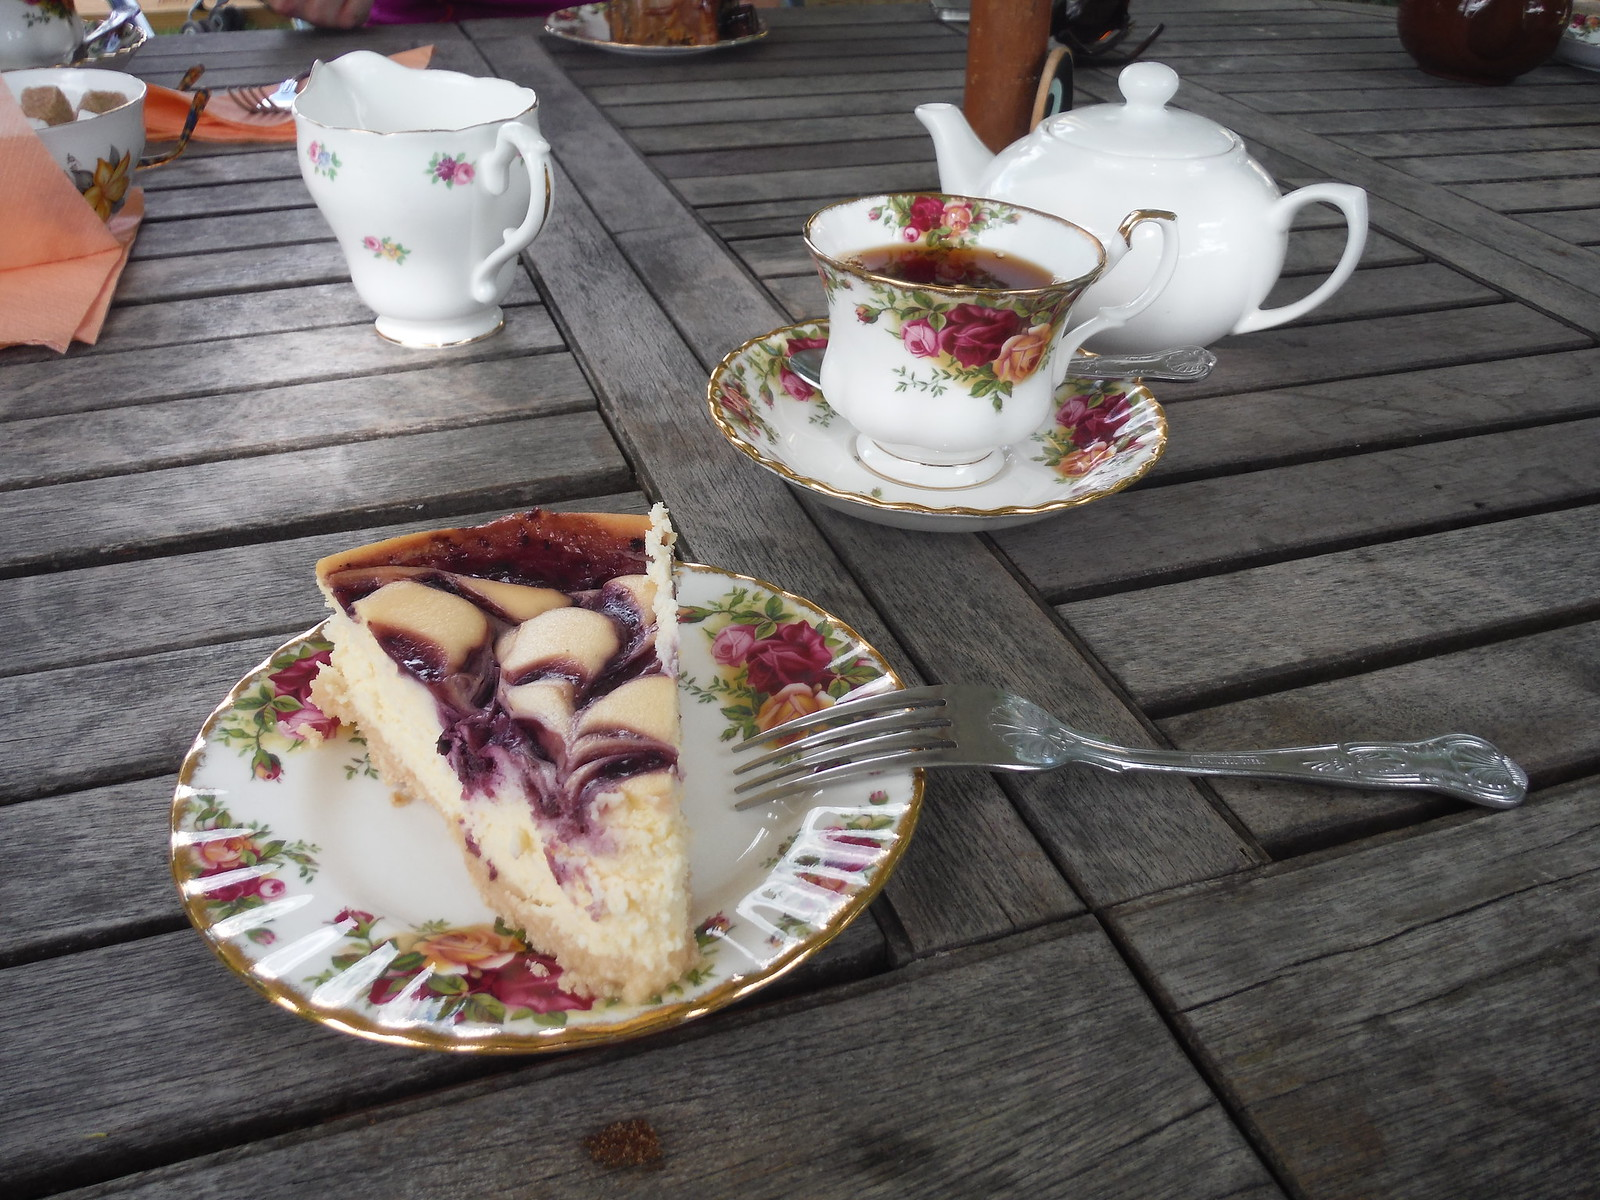 Oughtonhead Farm Garden Gate Tea Room SWC Walk 234 Hitchin Circular